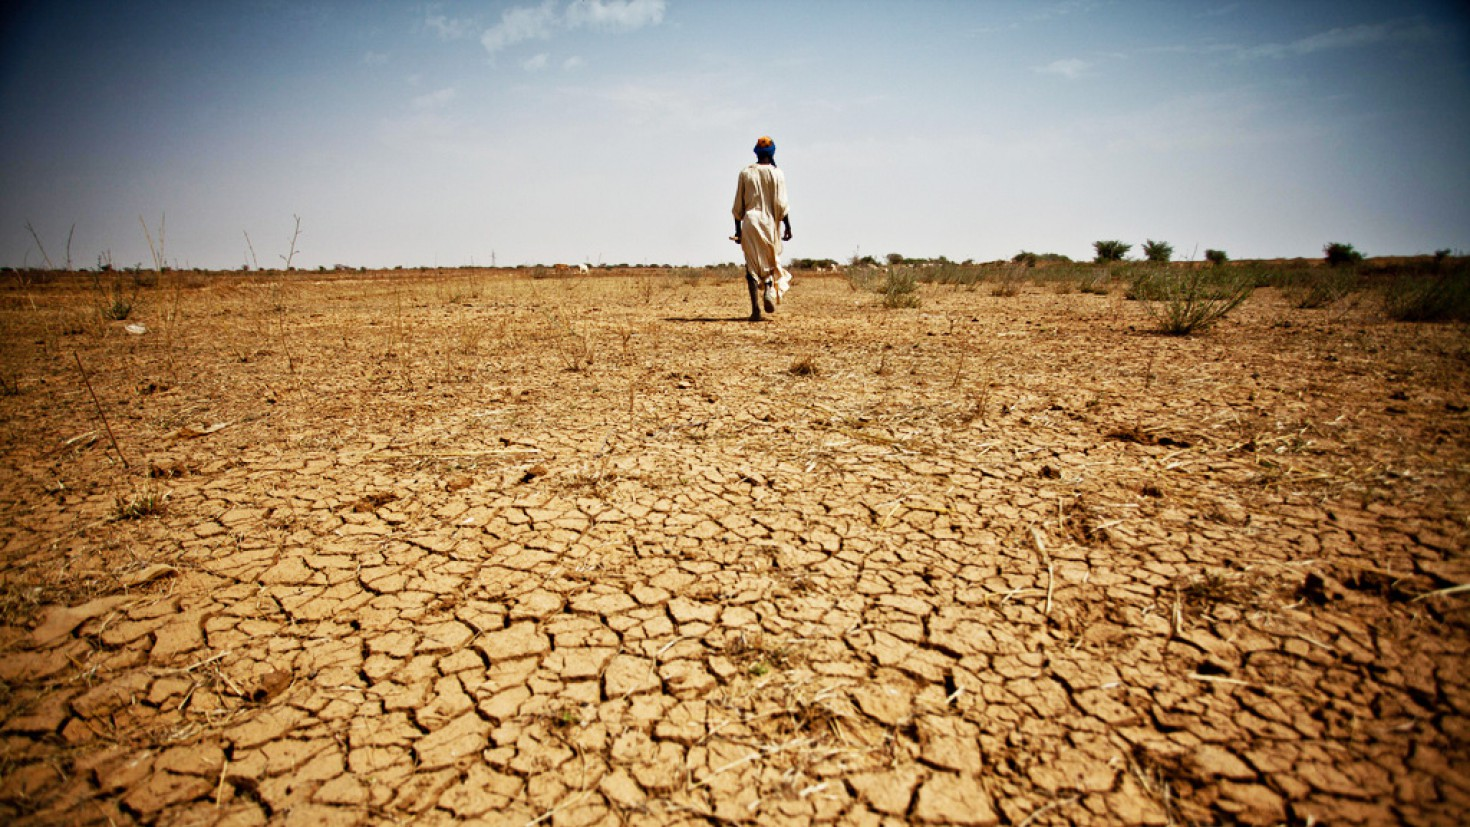 Arid soils in Mauritania, 2013. Longer, hotter, more regular heat waves could have a damaging effect on life expectancy and crop production in Africa.Photo credit: oxfam/flickr/creative commons